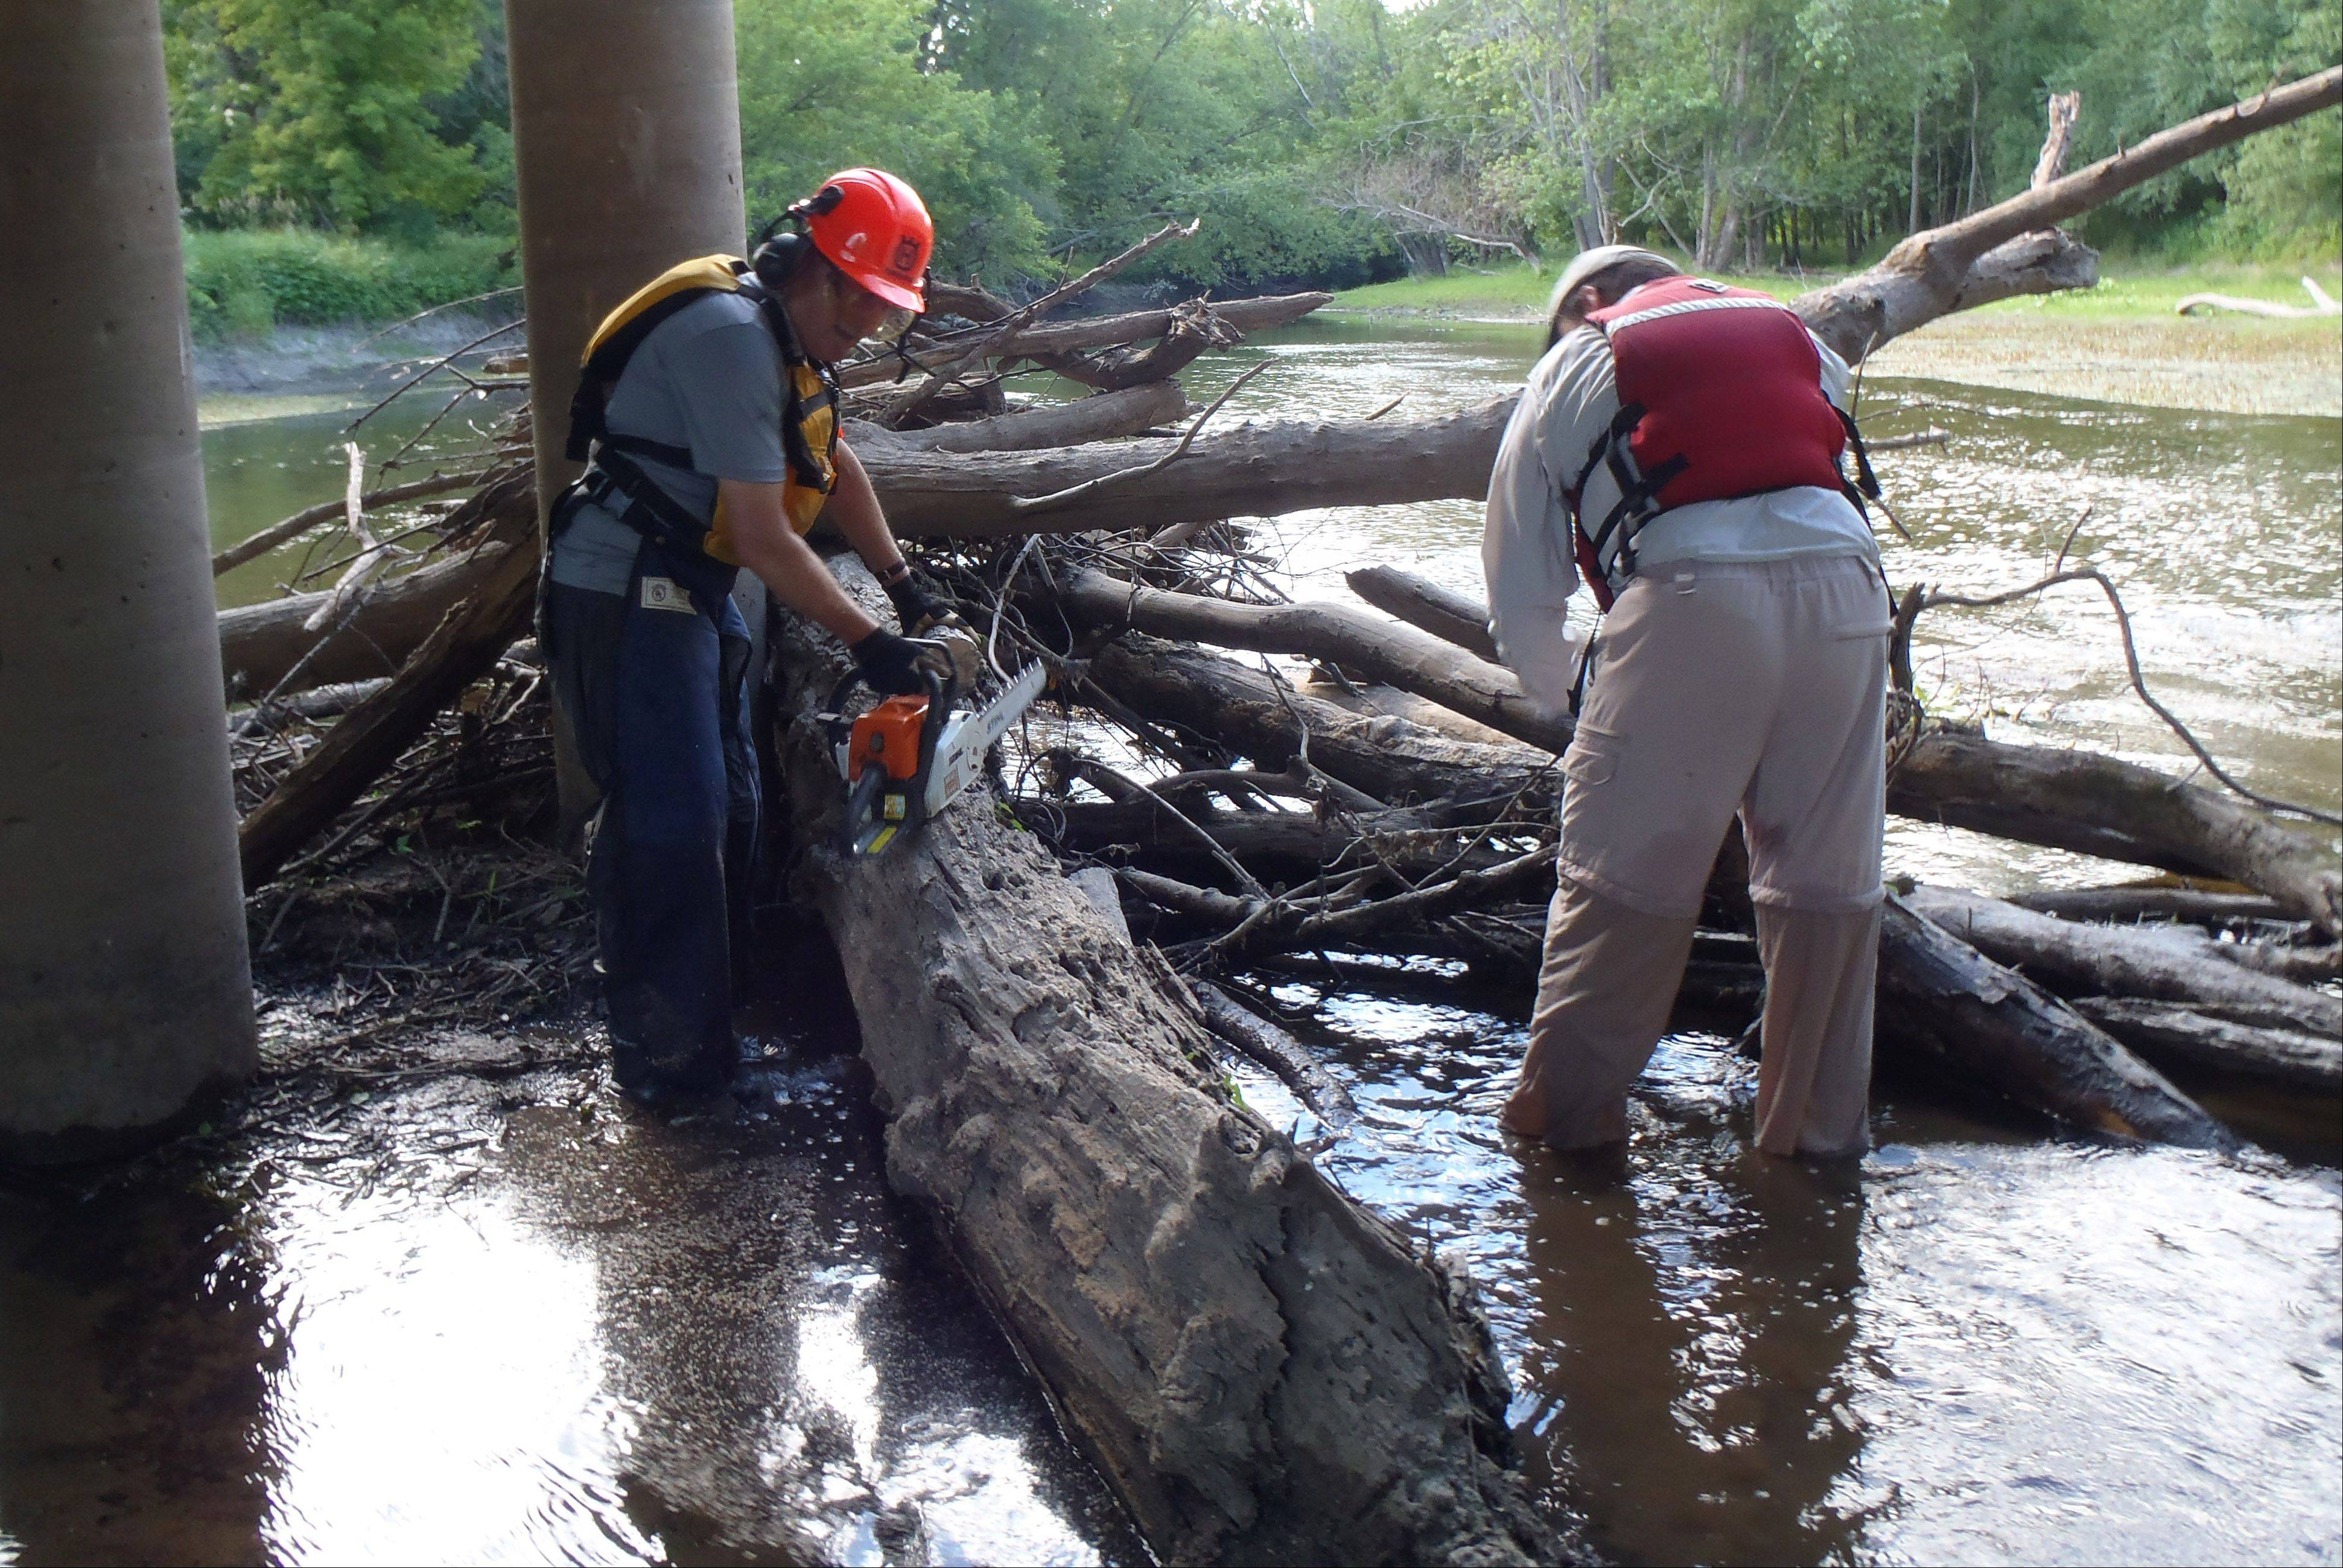 Larry Linden and Paul Klonowski remove a log jam in the Des Plaines River. Crews have been taking advantage of the low water levels in the river to remove debris.